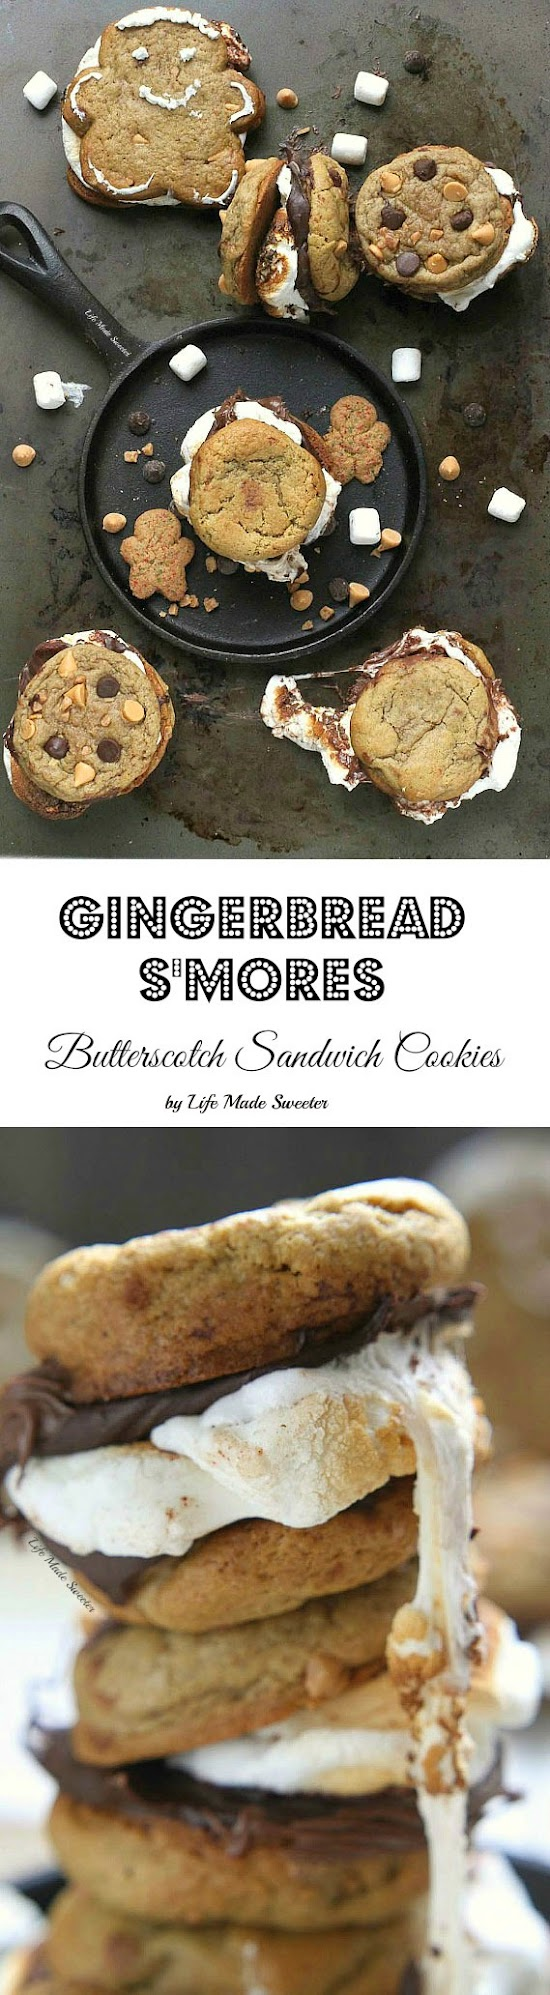 Gingerbread Butterscotch S'mores Sandwich Cookies -- from @LifeMadeSweeter #ChipitsHoliday.jpg